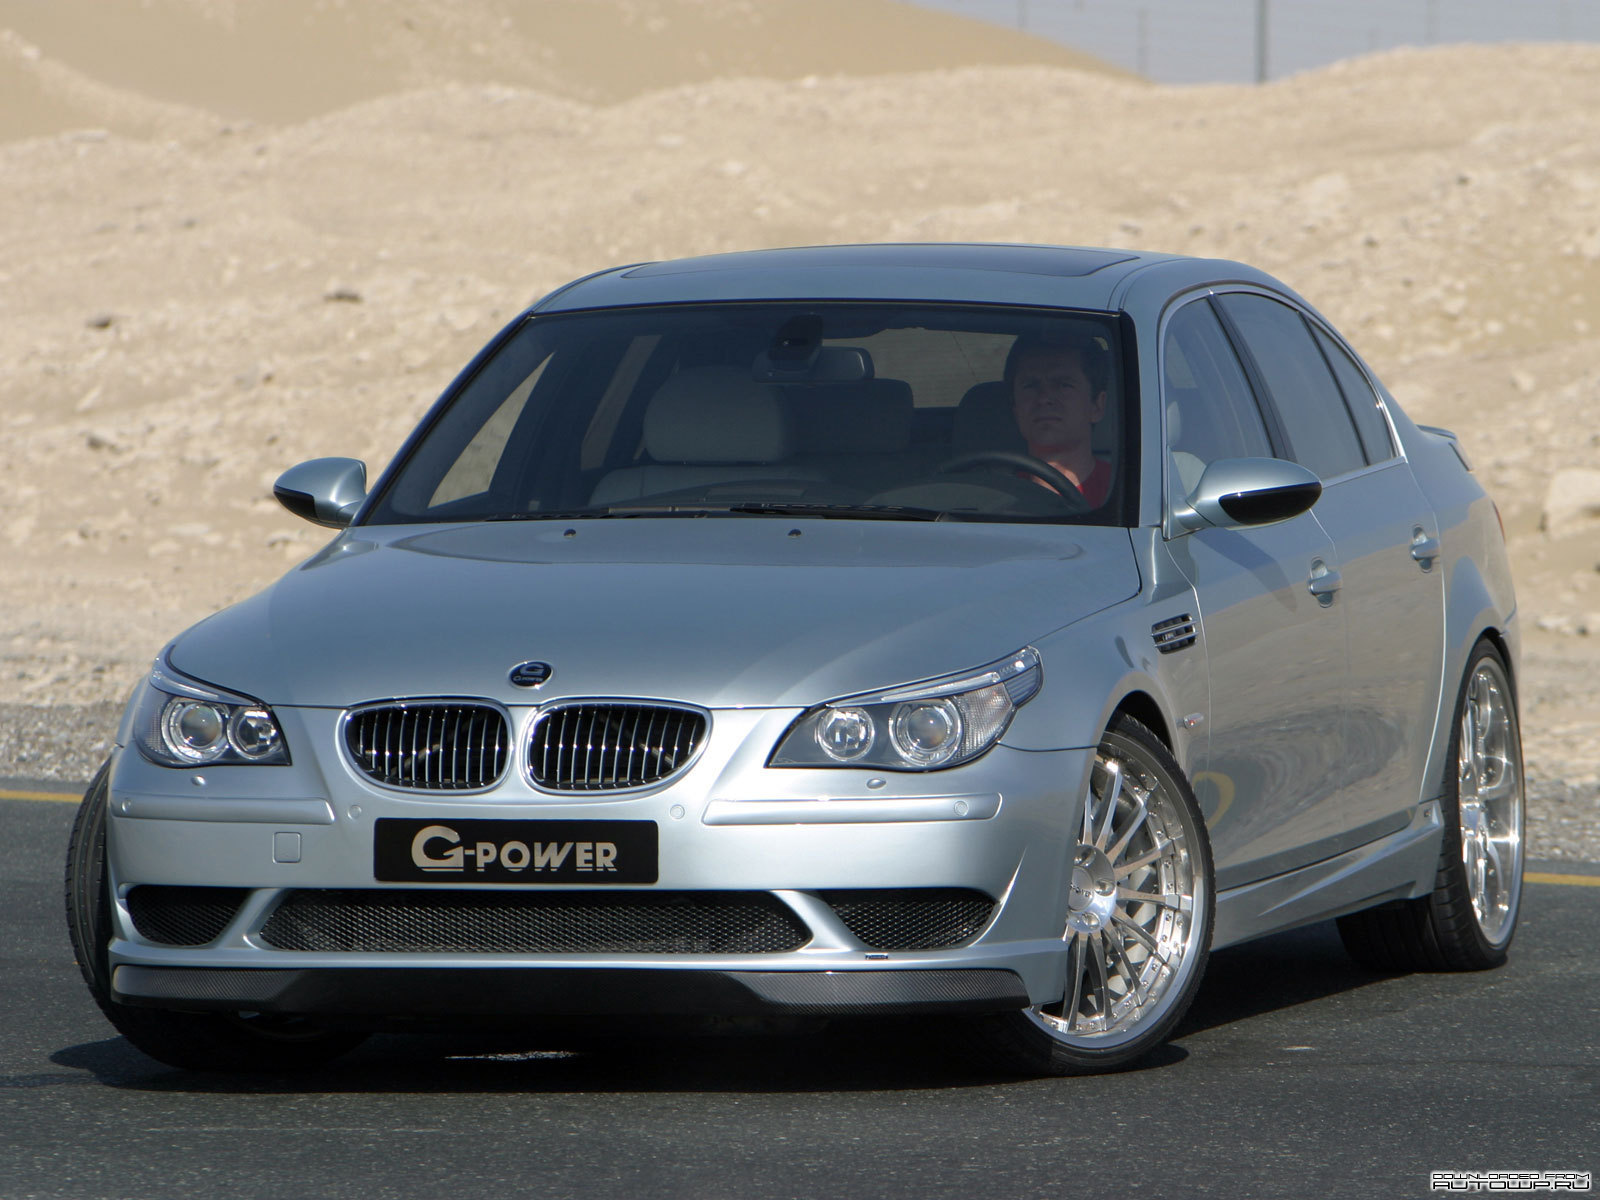 G Power BMW G5 5.0S photos - PhotoGallery with 7 pics| CarsBase.com